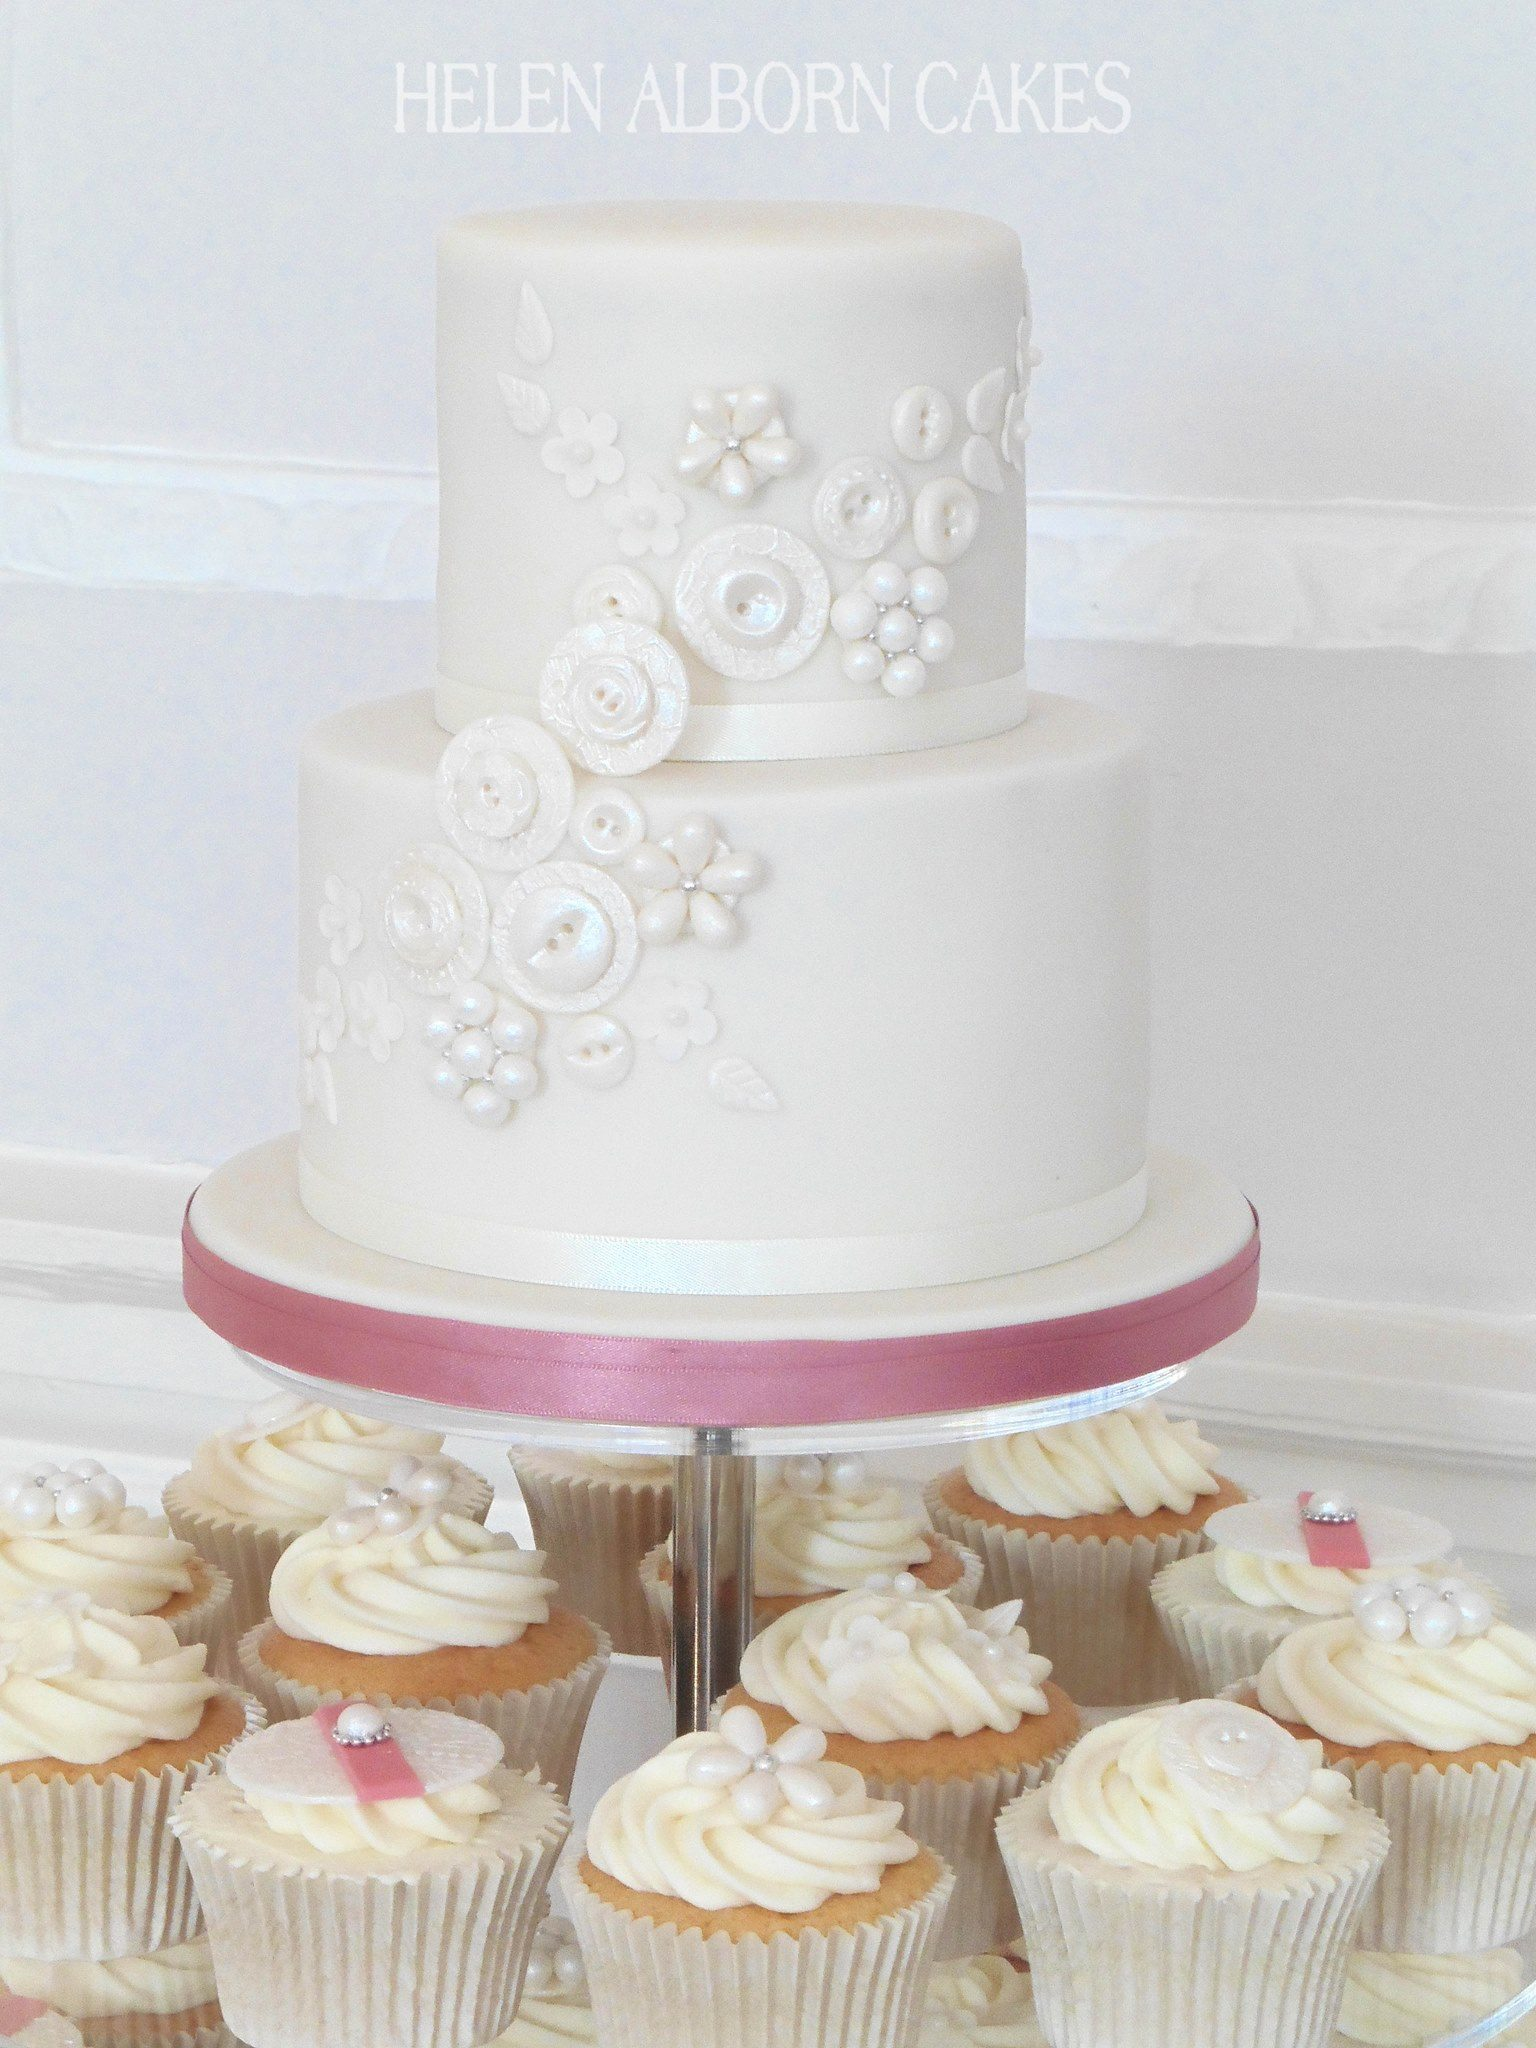 Button Bouquet inspired wedding cake by Helen Alborn Cakes